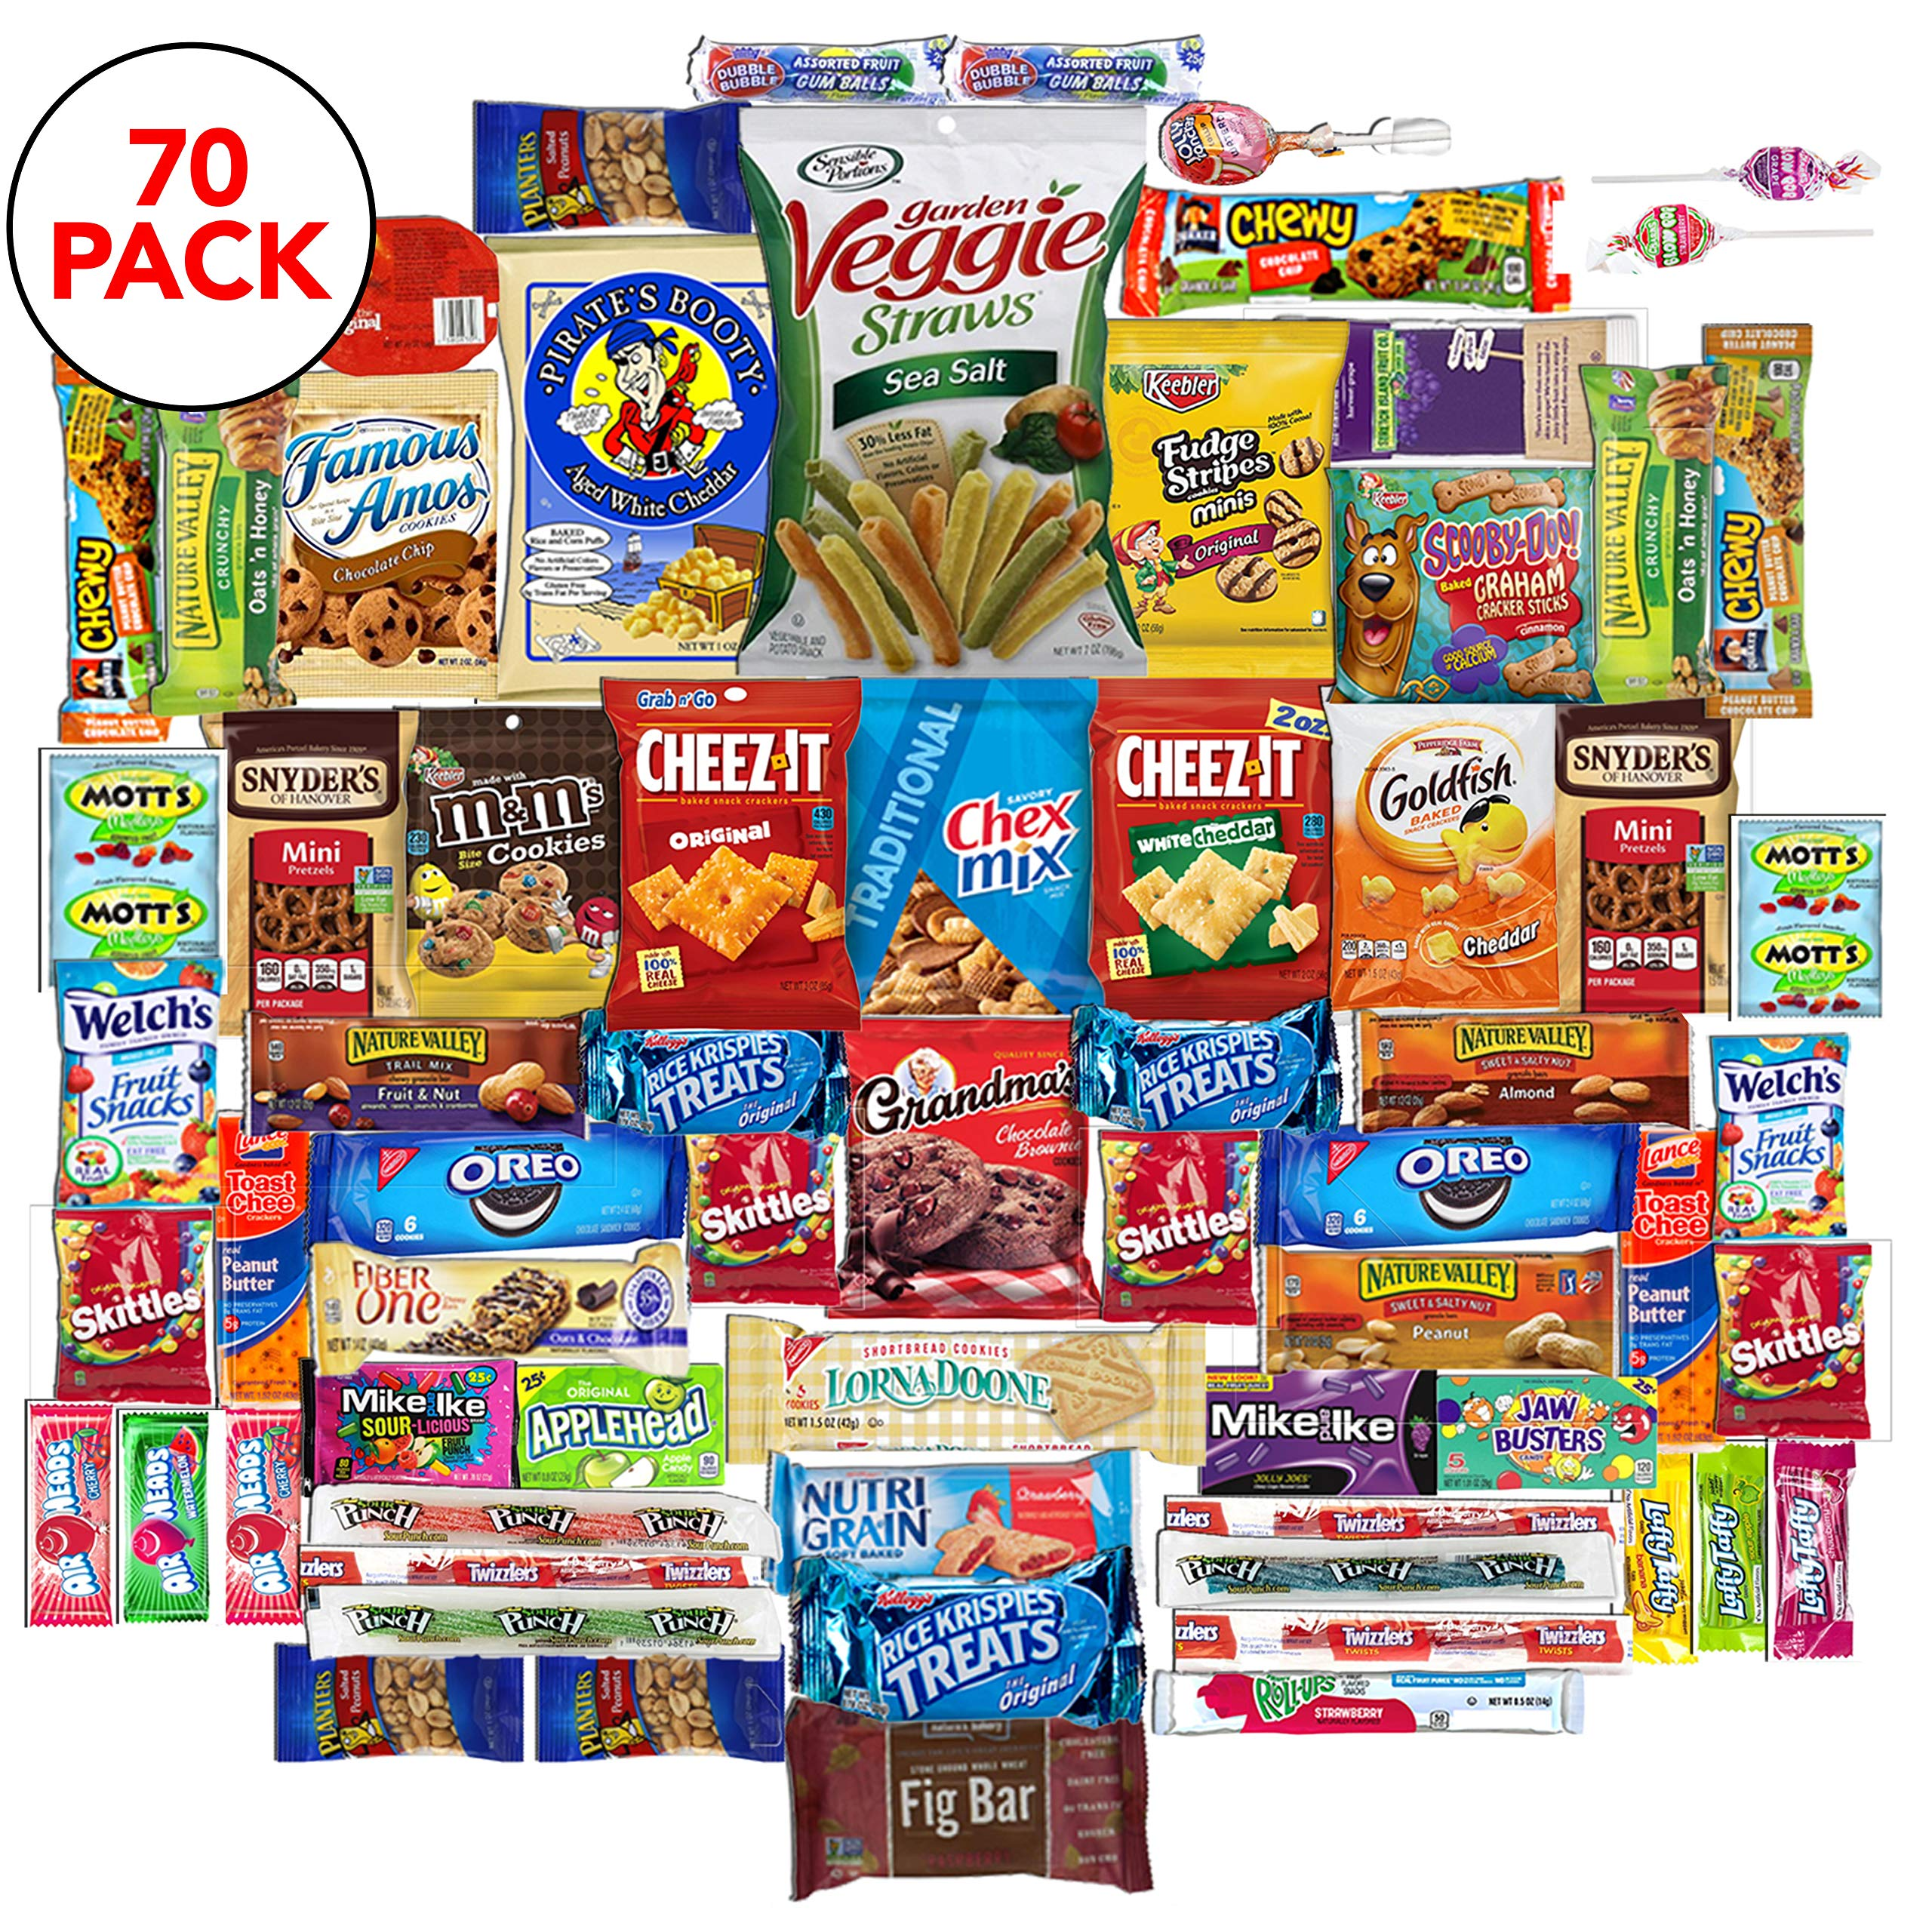 The Snack Bar - Snack Care Package (70 count) - Variety Assortment with American Candy, Fruit Snacks, Granola Bars, Chips, and More, Gift Snack Box for Lunches, Office, College Students, Final Exams.